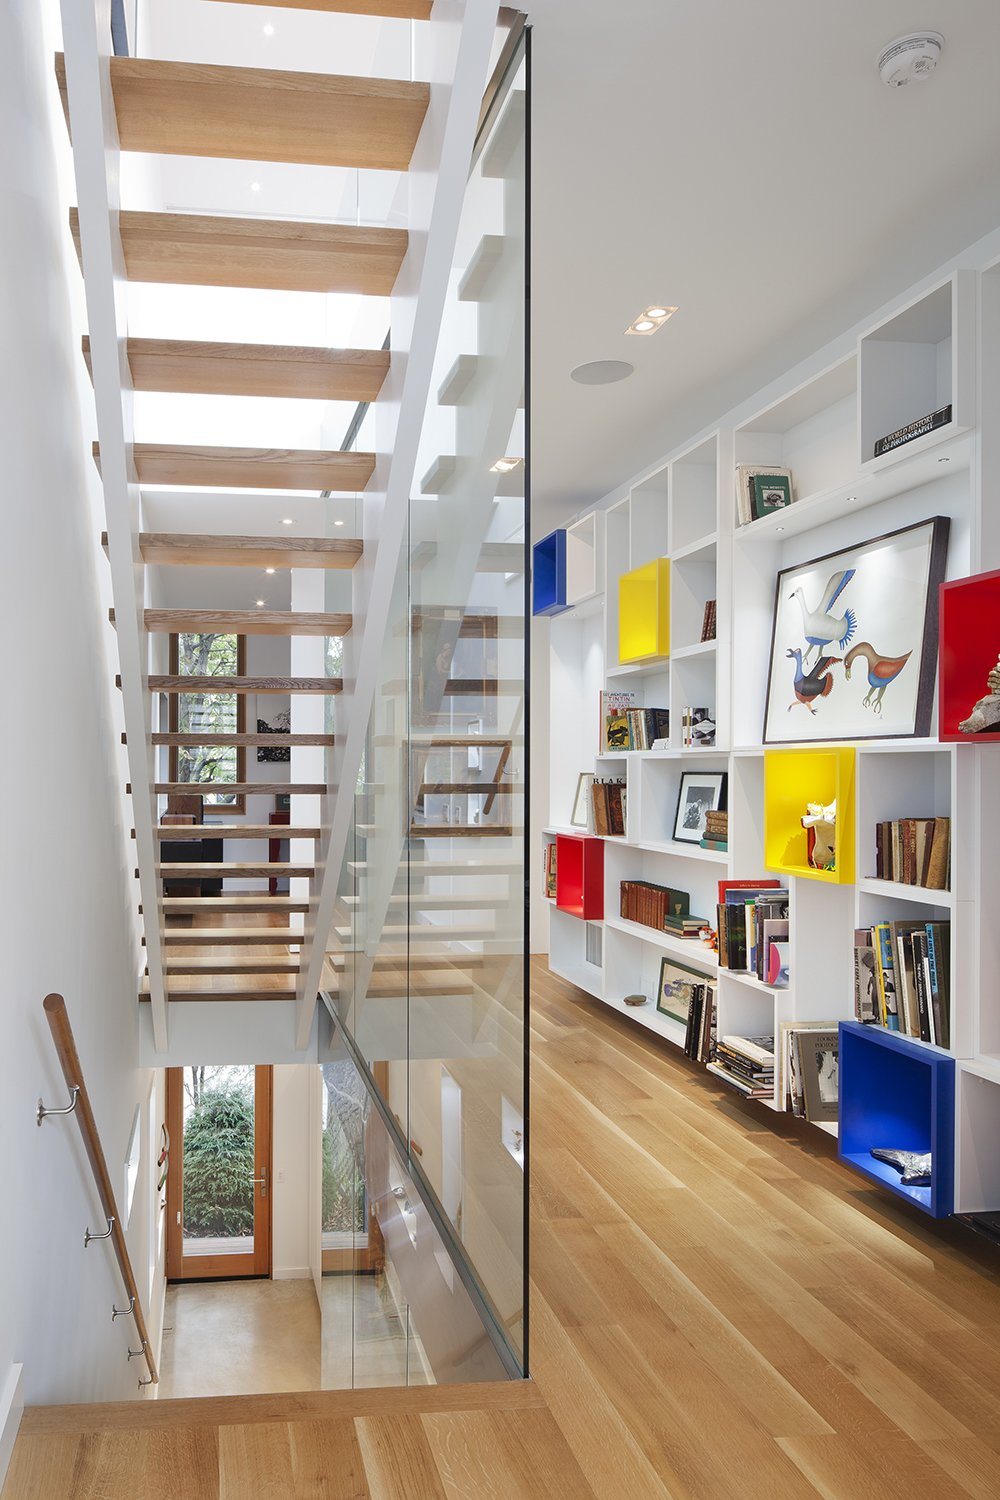 """The interior was designed as a backdrop to the art and life of its inhabitants,"" Clarkson noted. ""A custom-built wall of display cubes adds an accent of primary color in the second floor hallway."" Solid white oak flooring continues onto the second level from the stairs, and Middlebrook Woodworking Ltd. lacquered that same material for the display cubes."